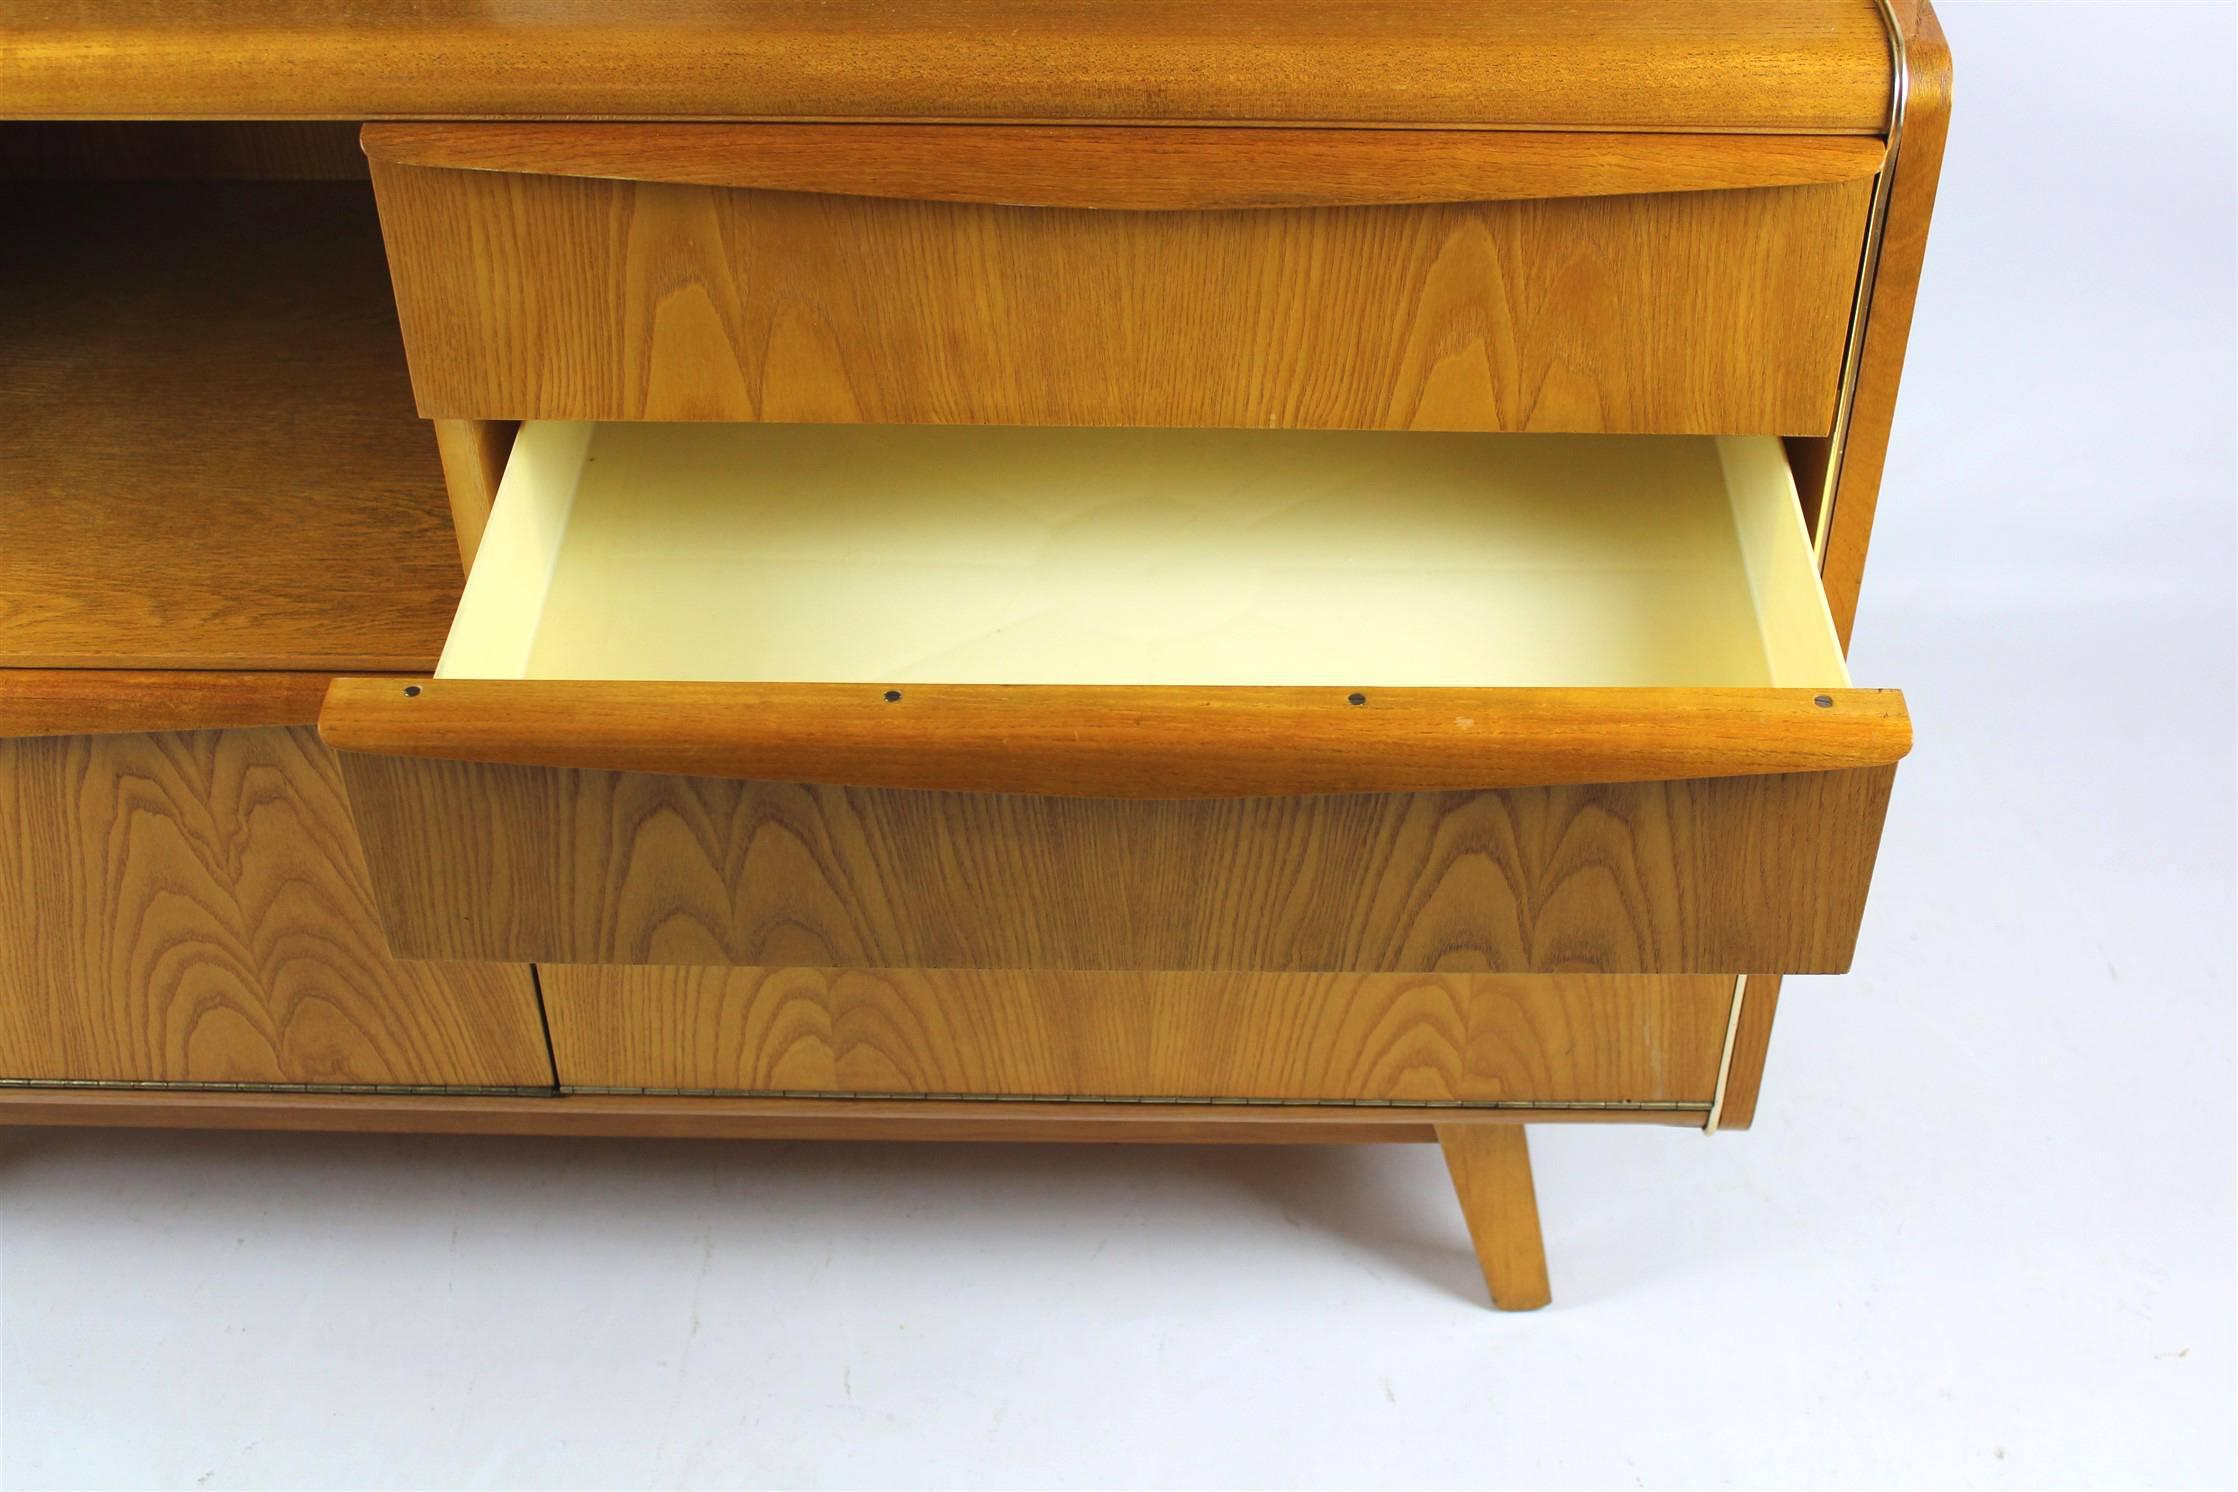 Vintage Bar Cabinet By Bohumil Landsman For Jitona, 1960s For Sale 1